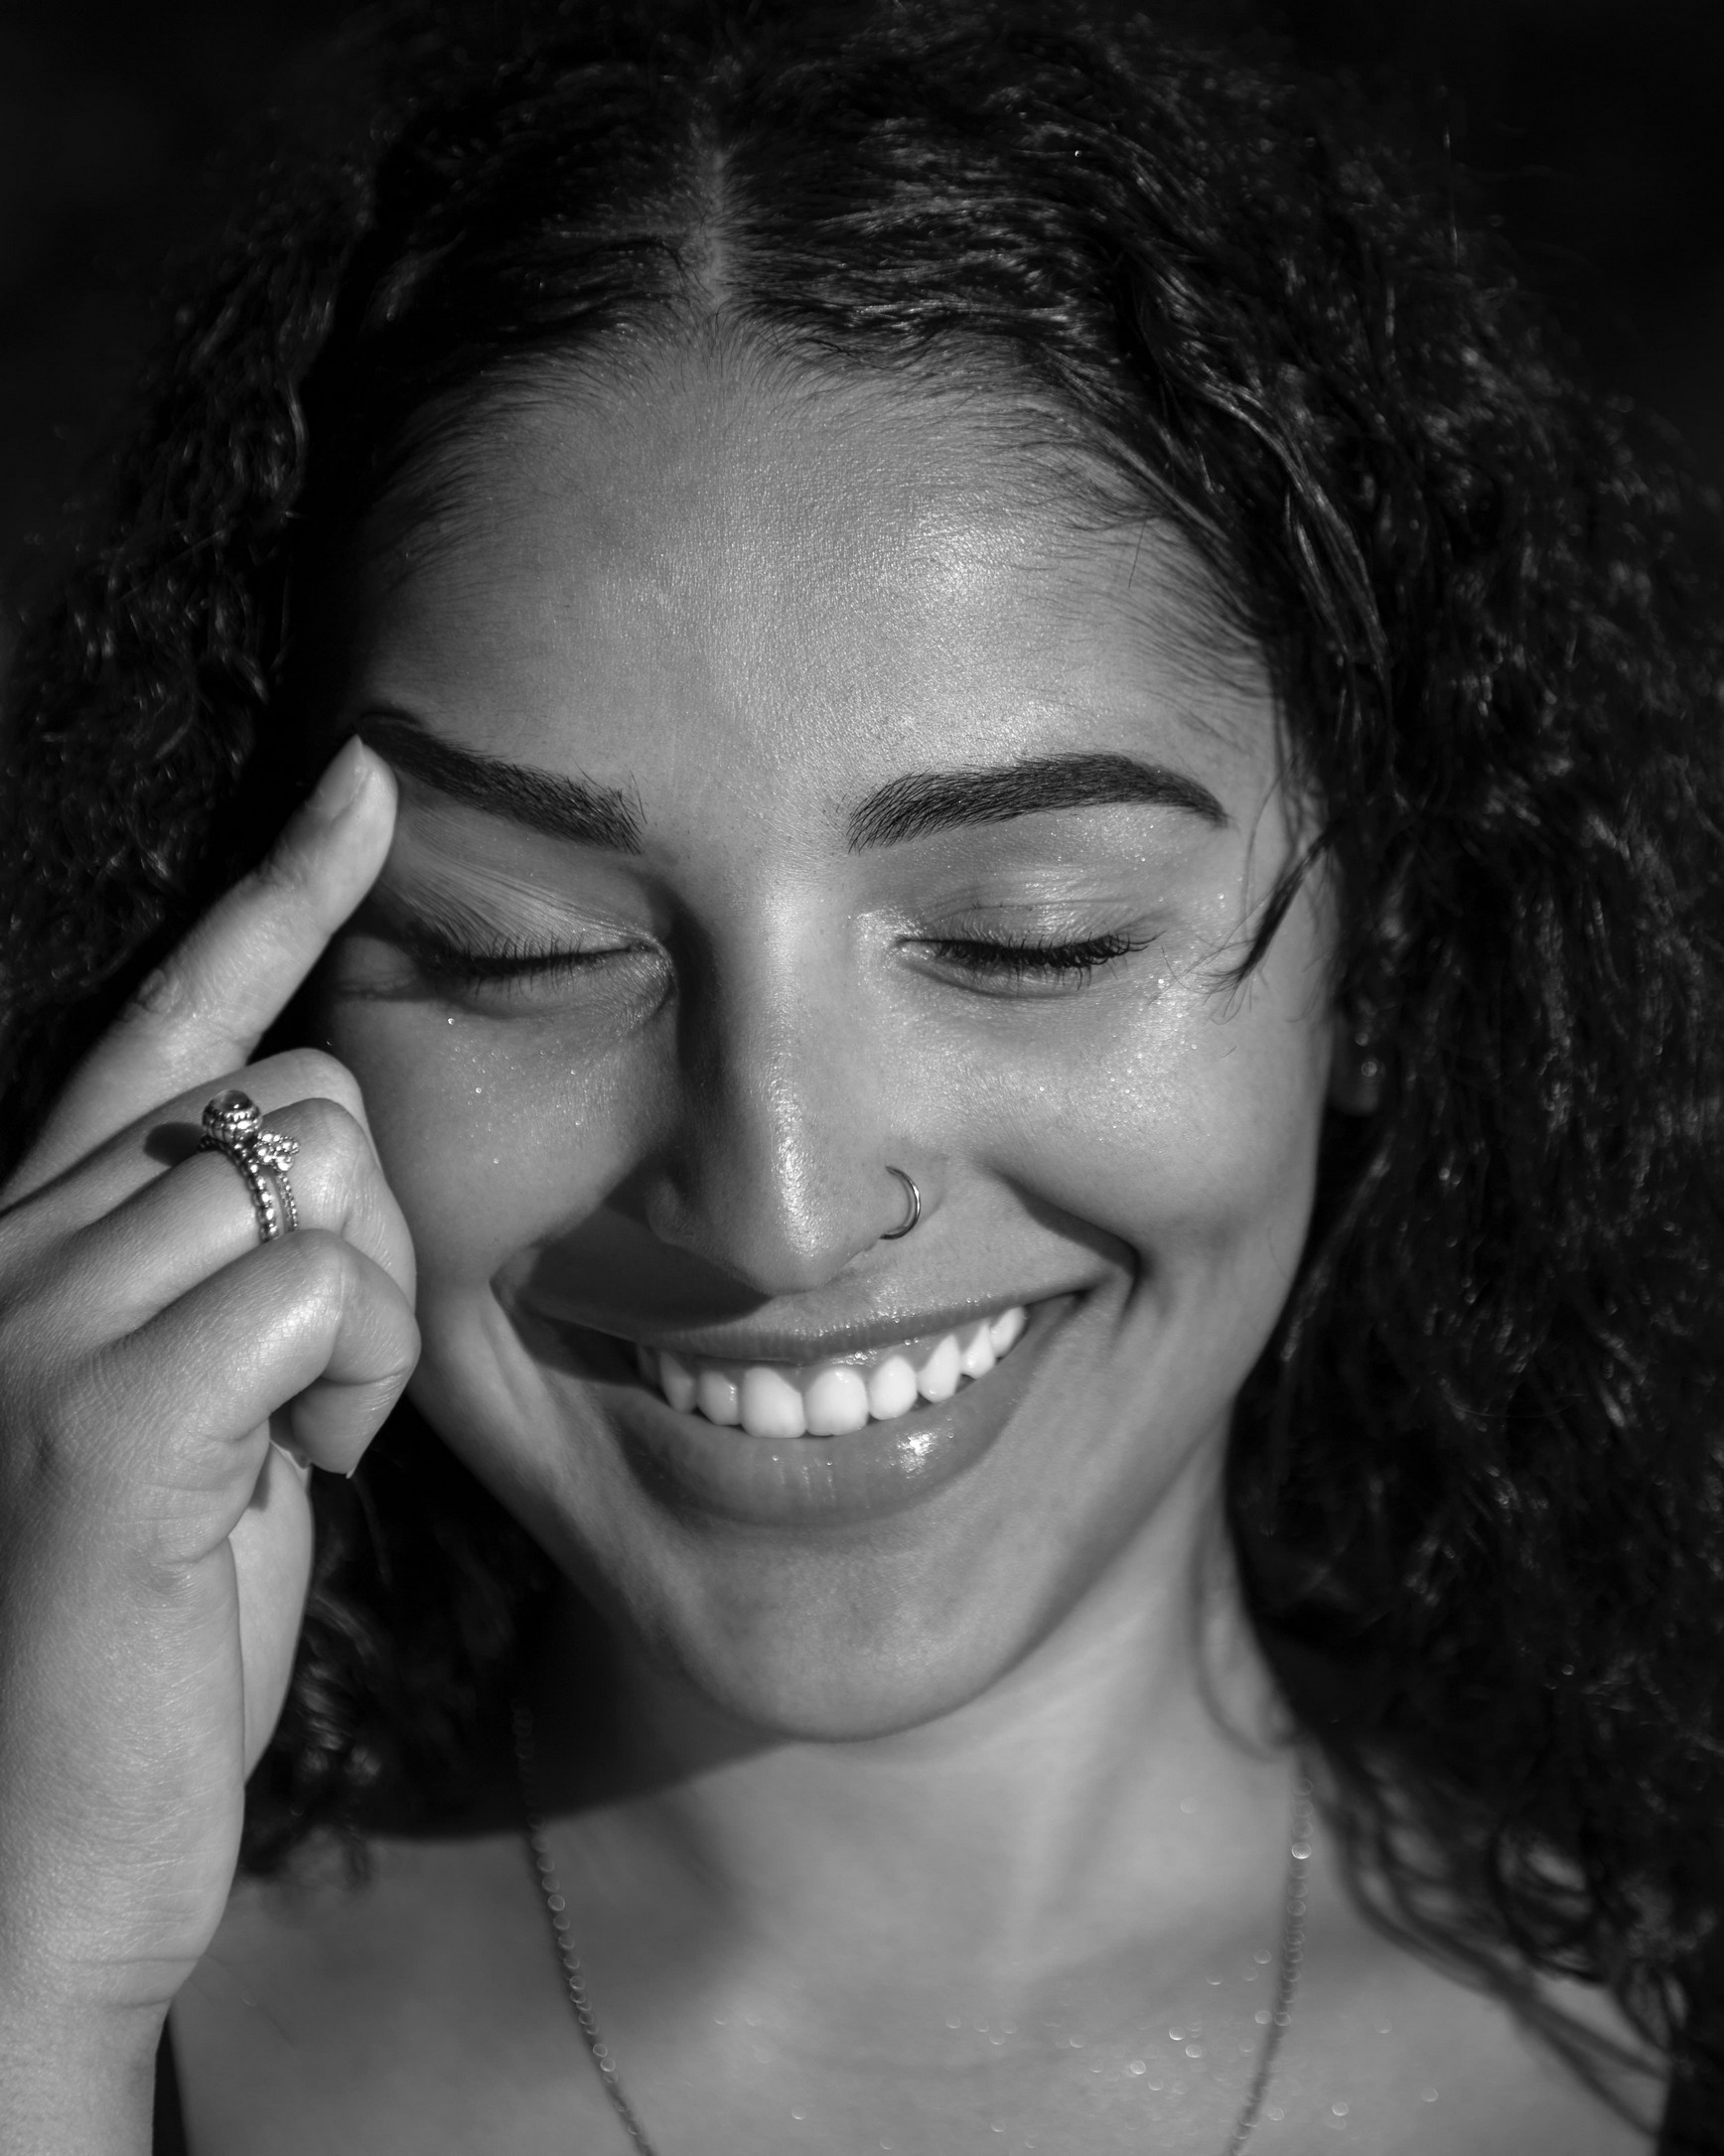 woman smiling whilst pointing to her eyebrows, black and white image.